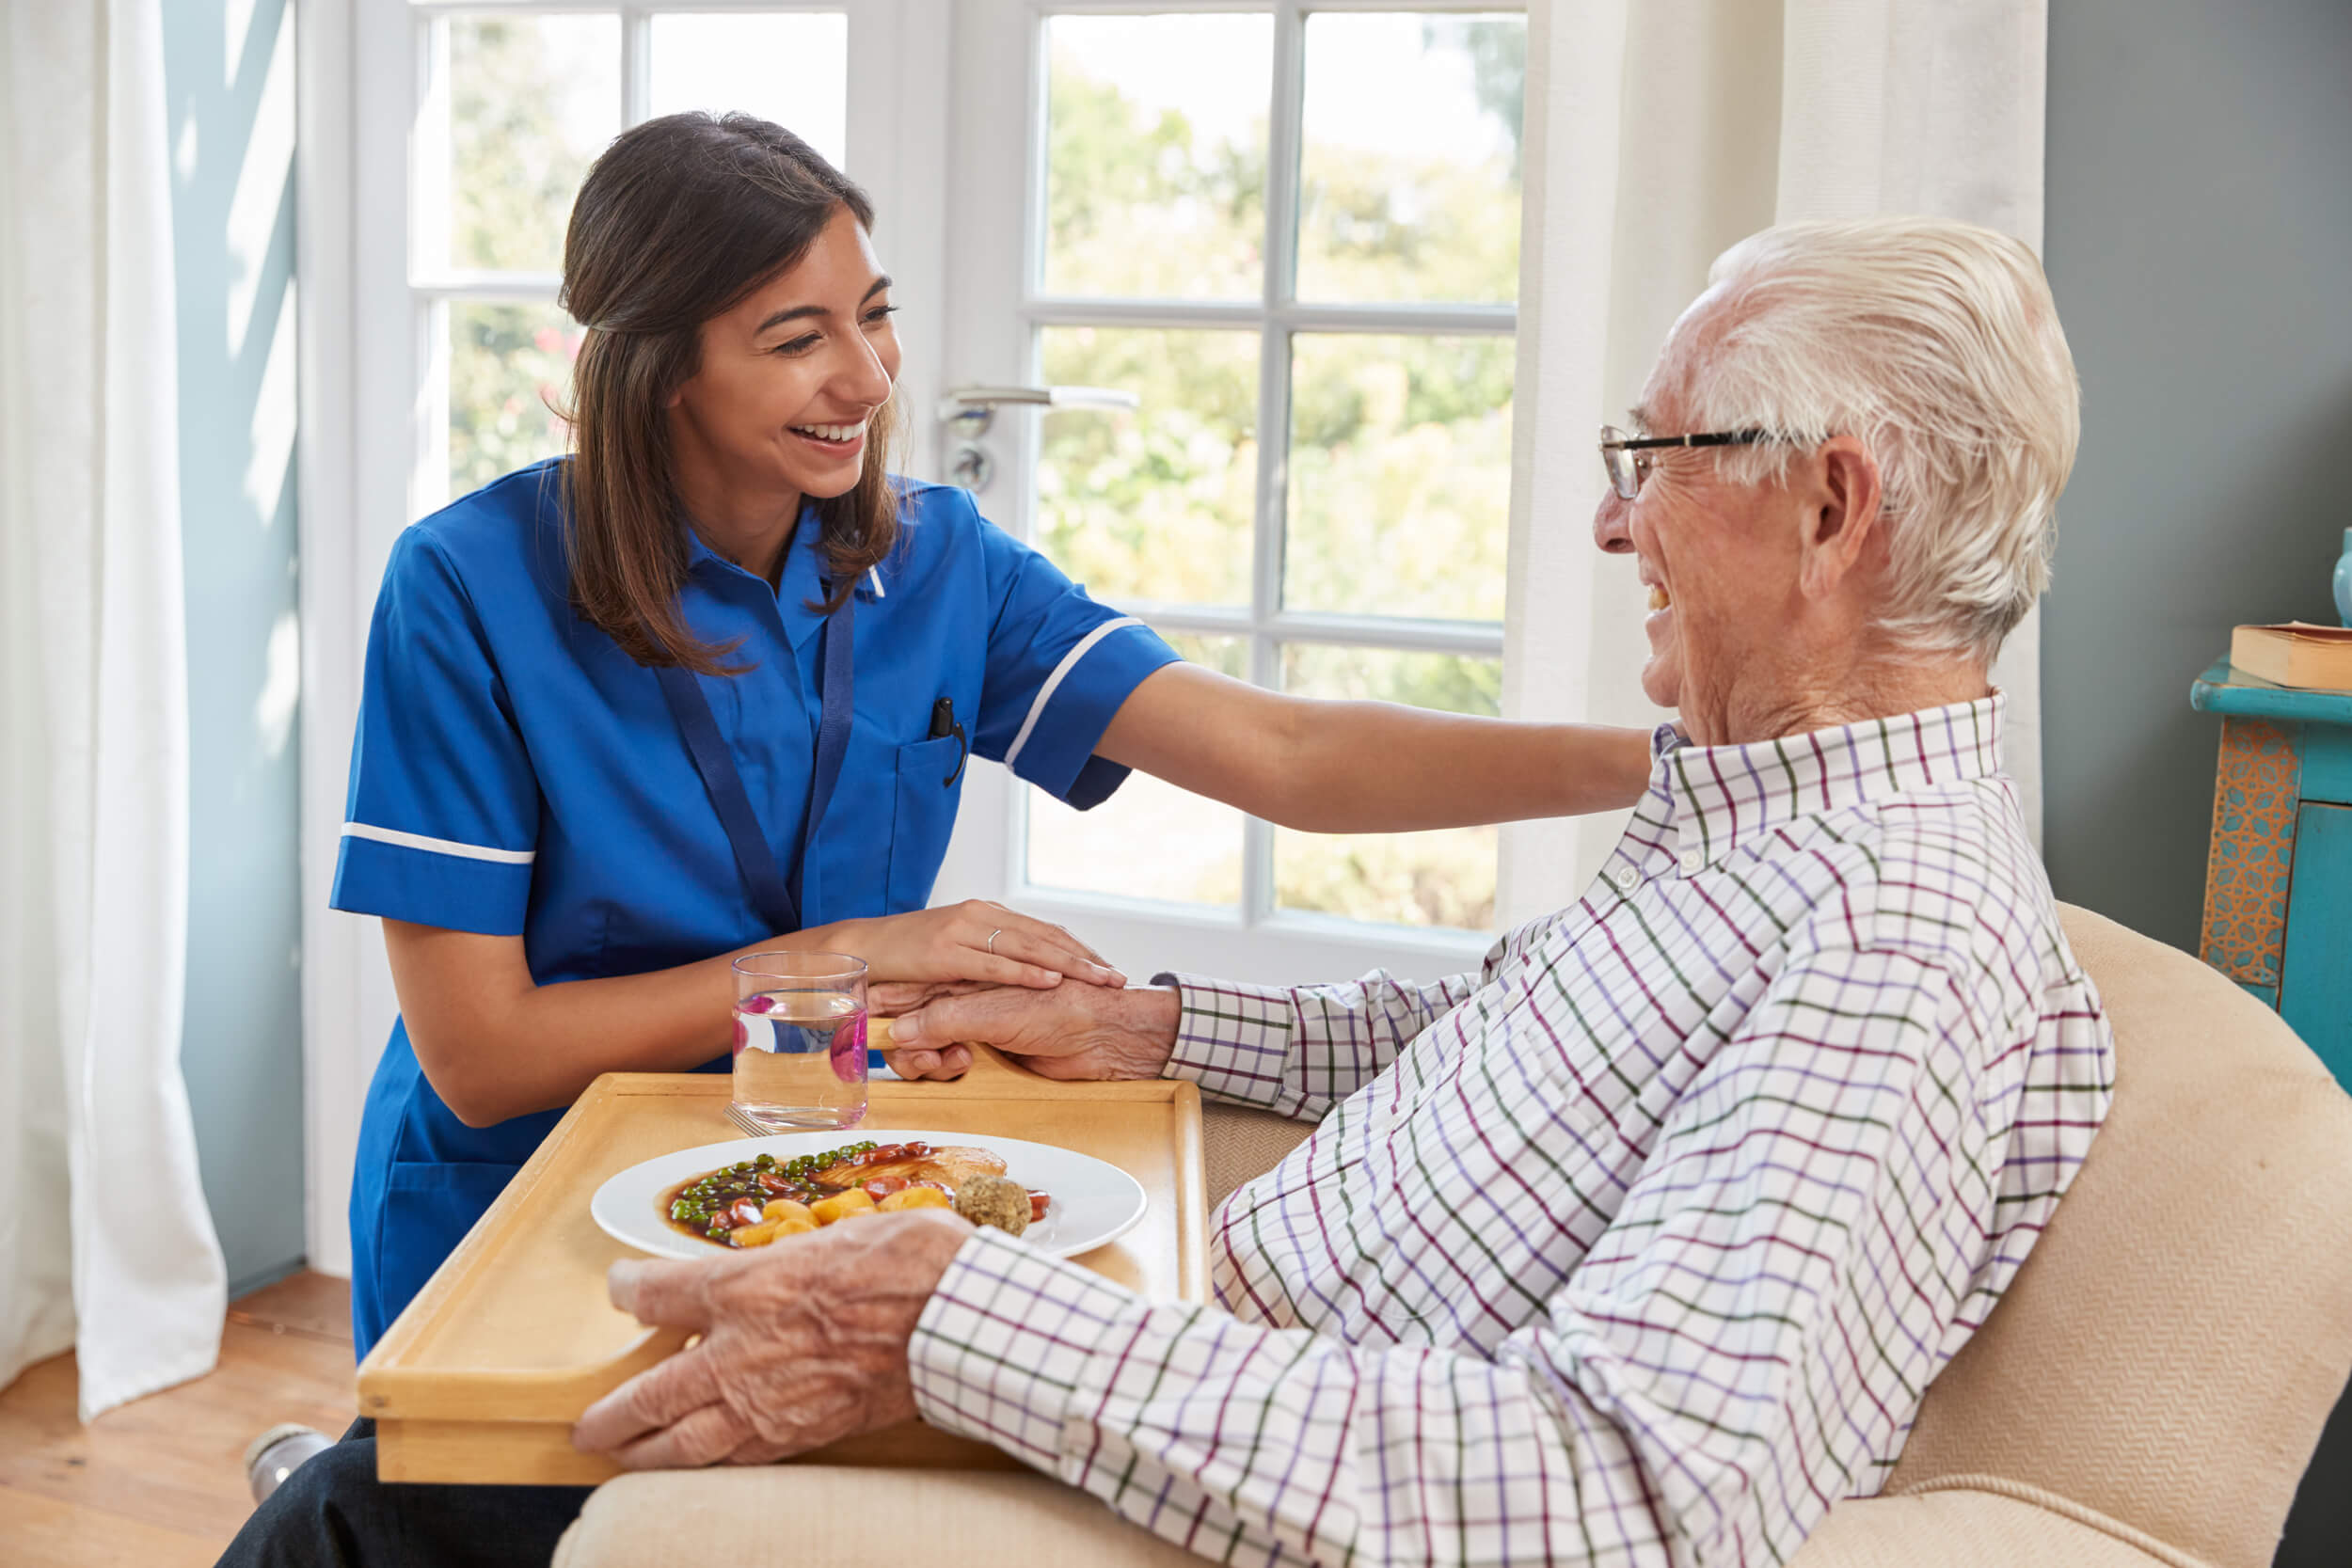 UK Caring Services Nurse serving dinner to a senior man in an armchair at home